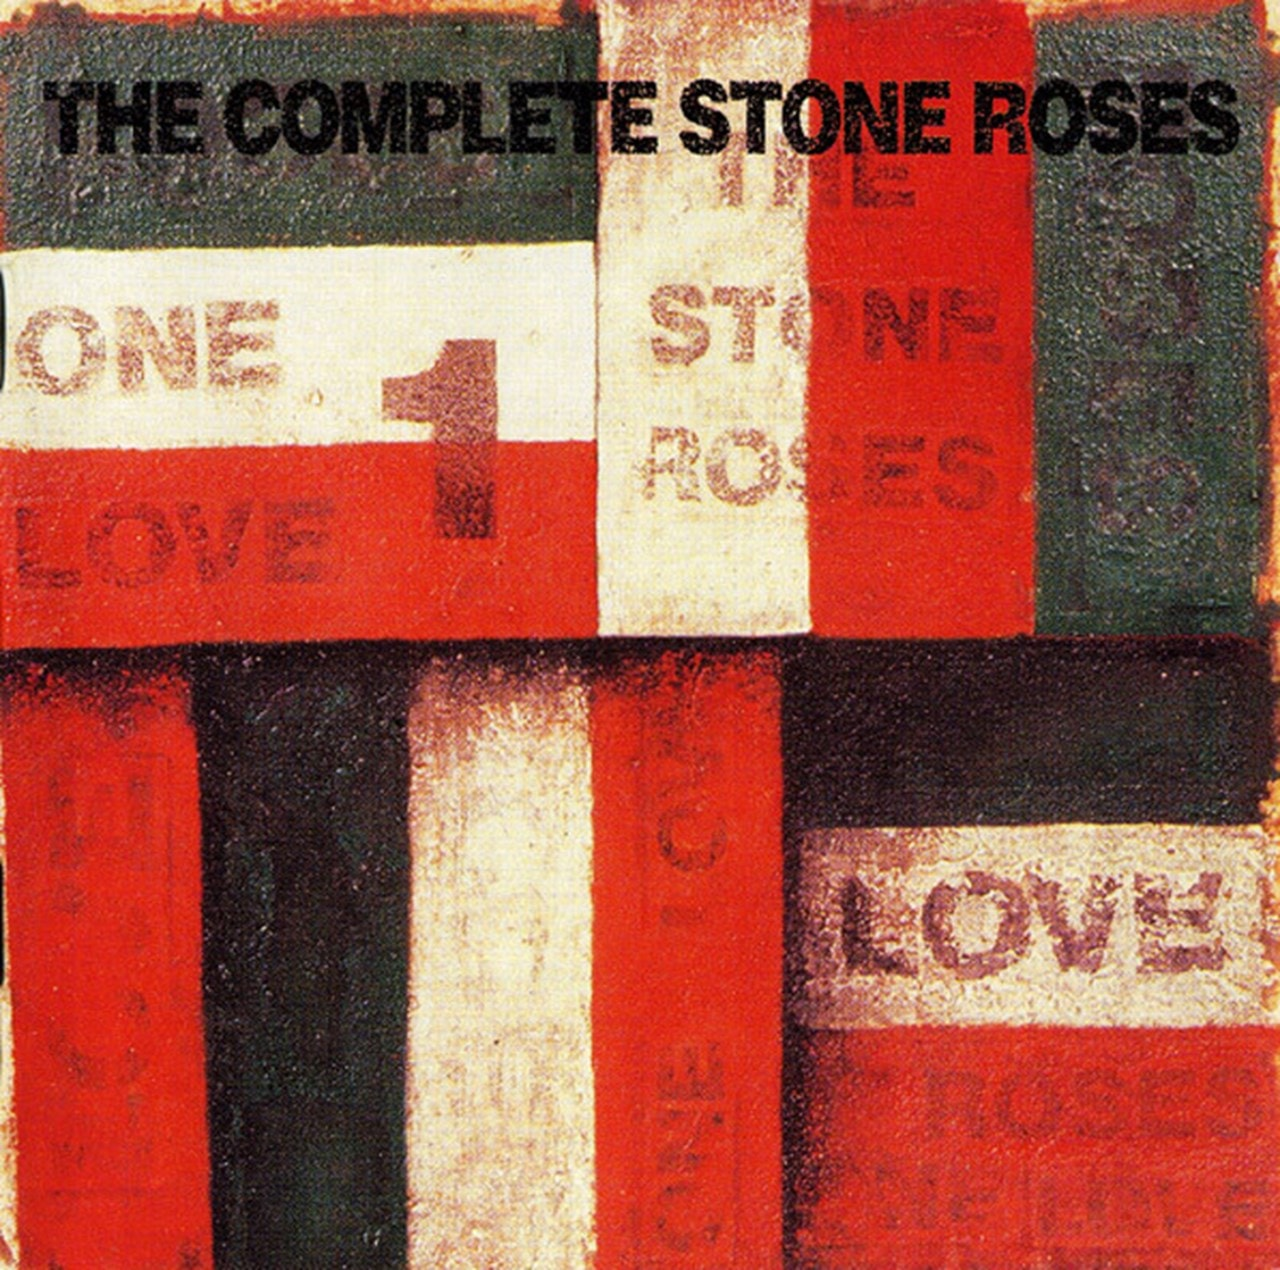 The Complete Stone Roses - 1